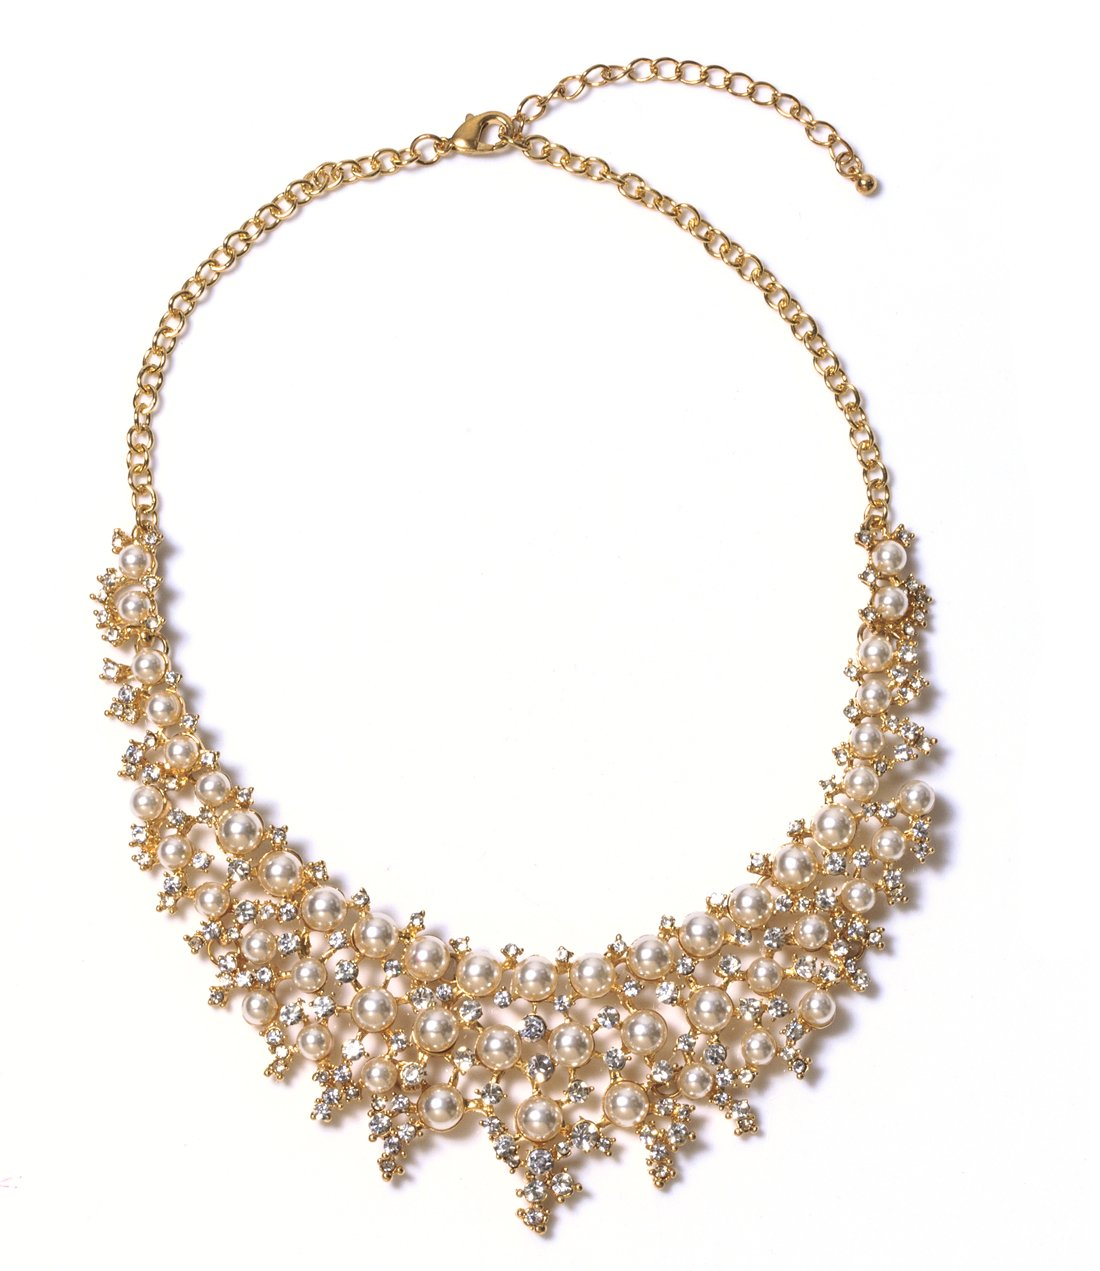 VK Accessories Statement Pearl Bid Queen Costume Crystal Necklace Luxurious Filigree Beaded Jewelry Gold Collar